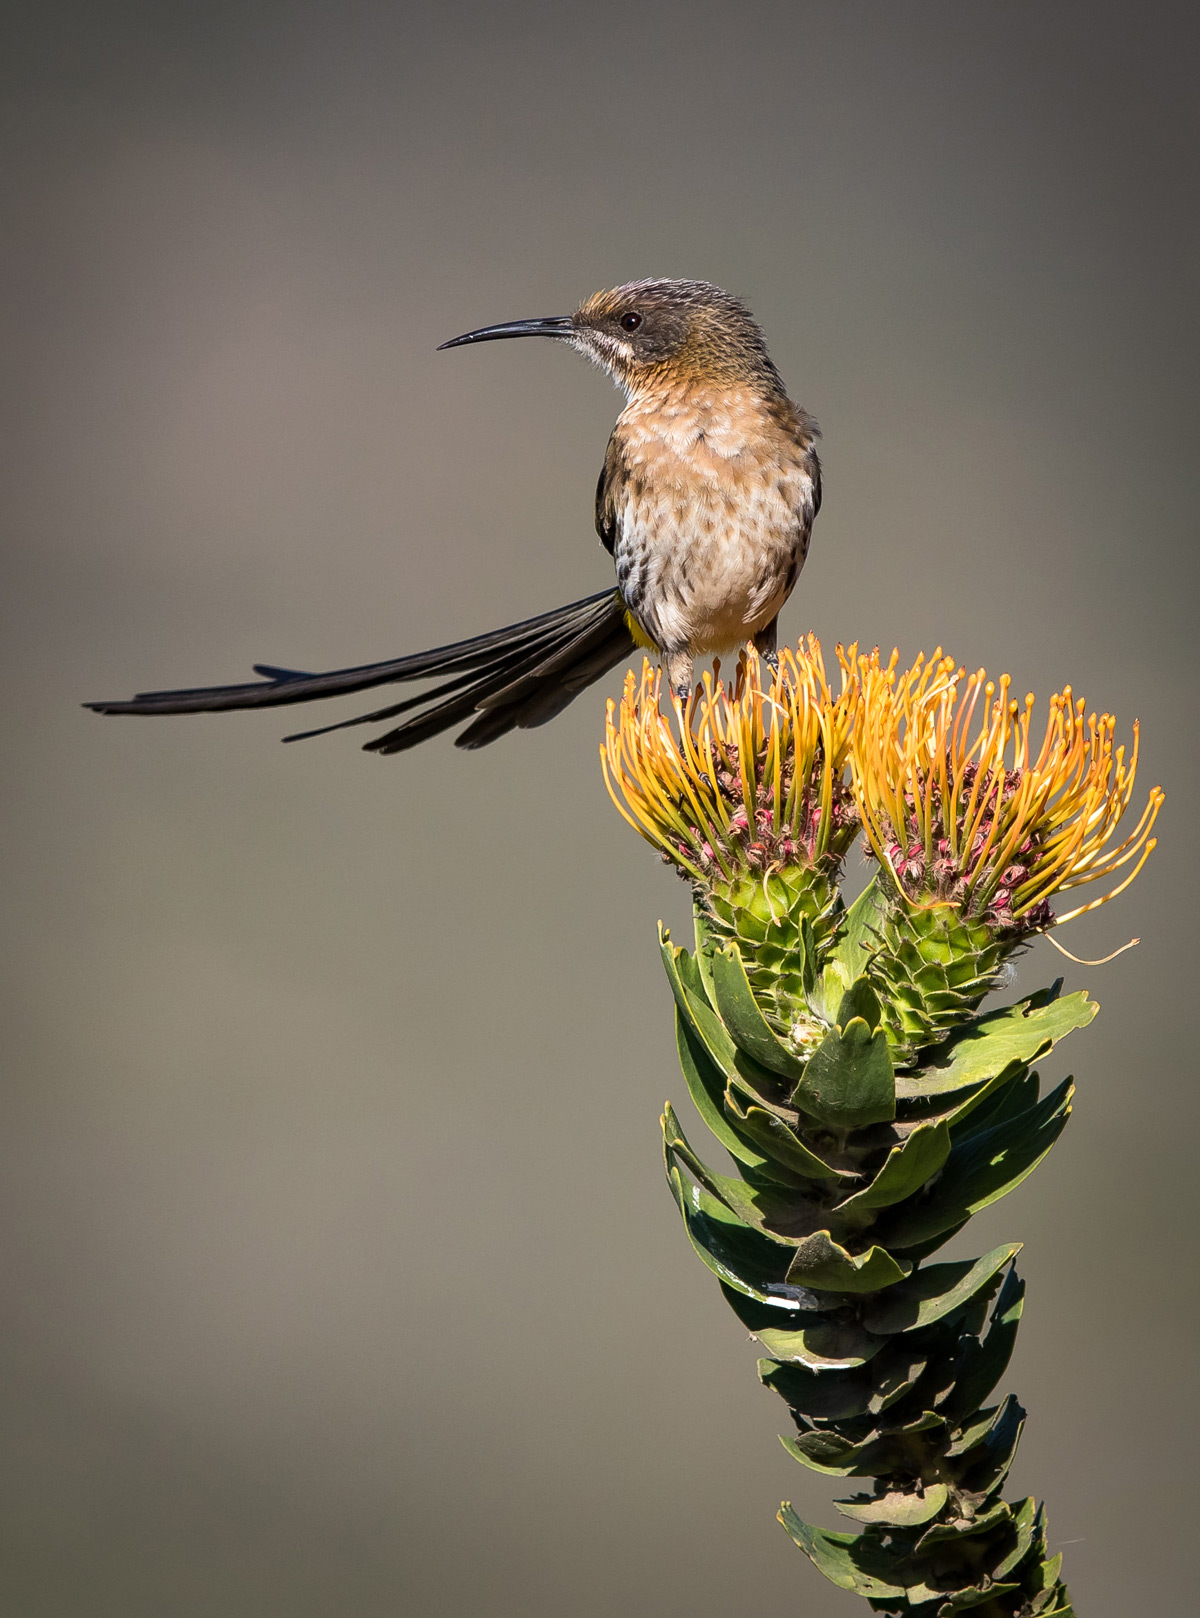 A male Cape sugarbird on a pincushion flower in the Slanghoek Valley, Western Cape © Gideon Malherbe